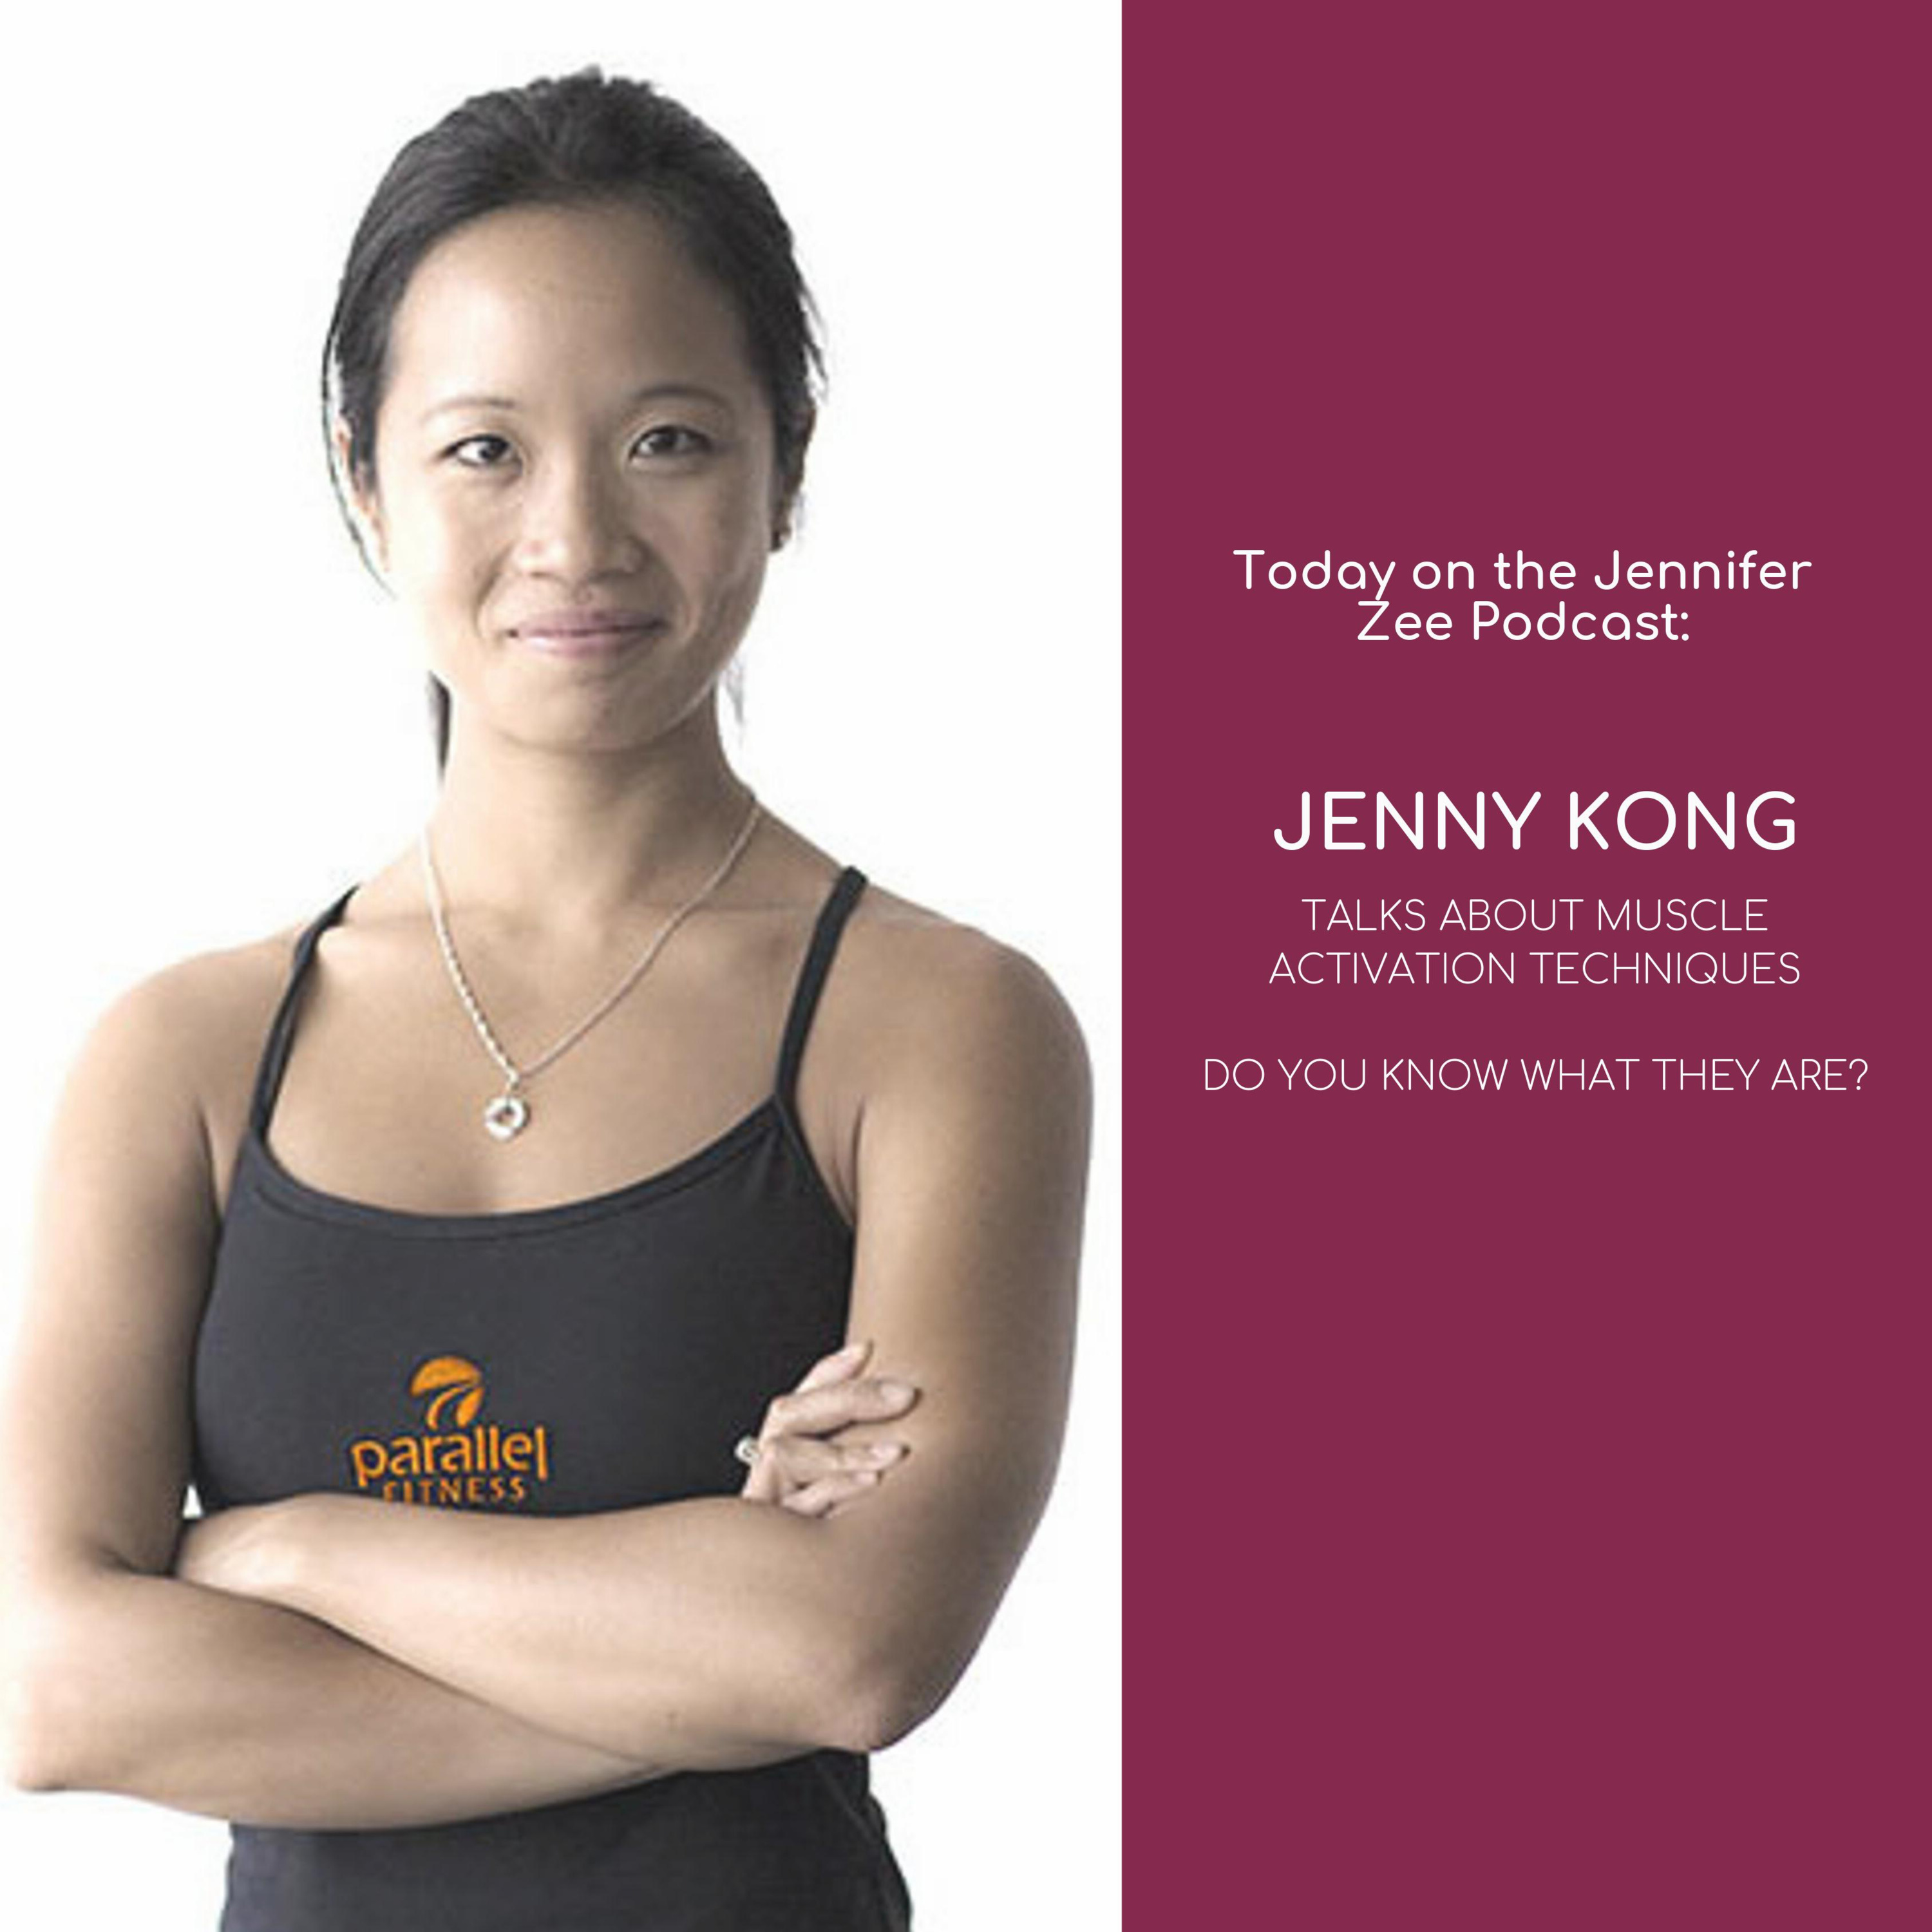 Demystifying Muscle Activation Techniques with Jenny Kong